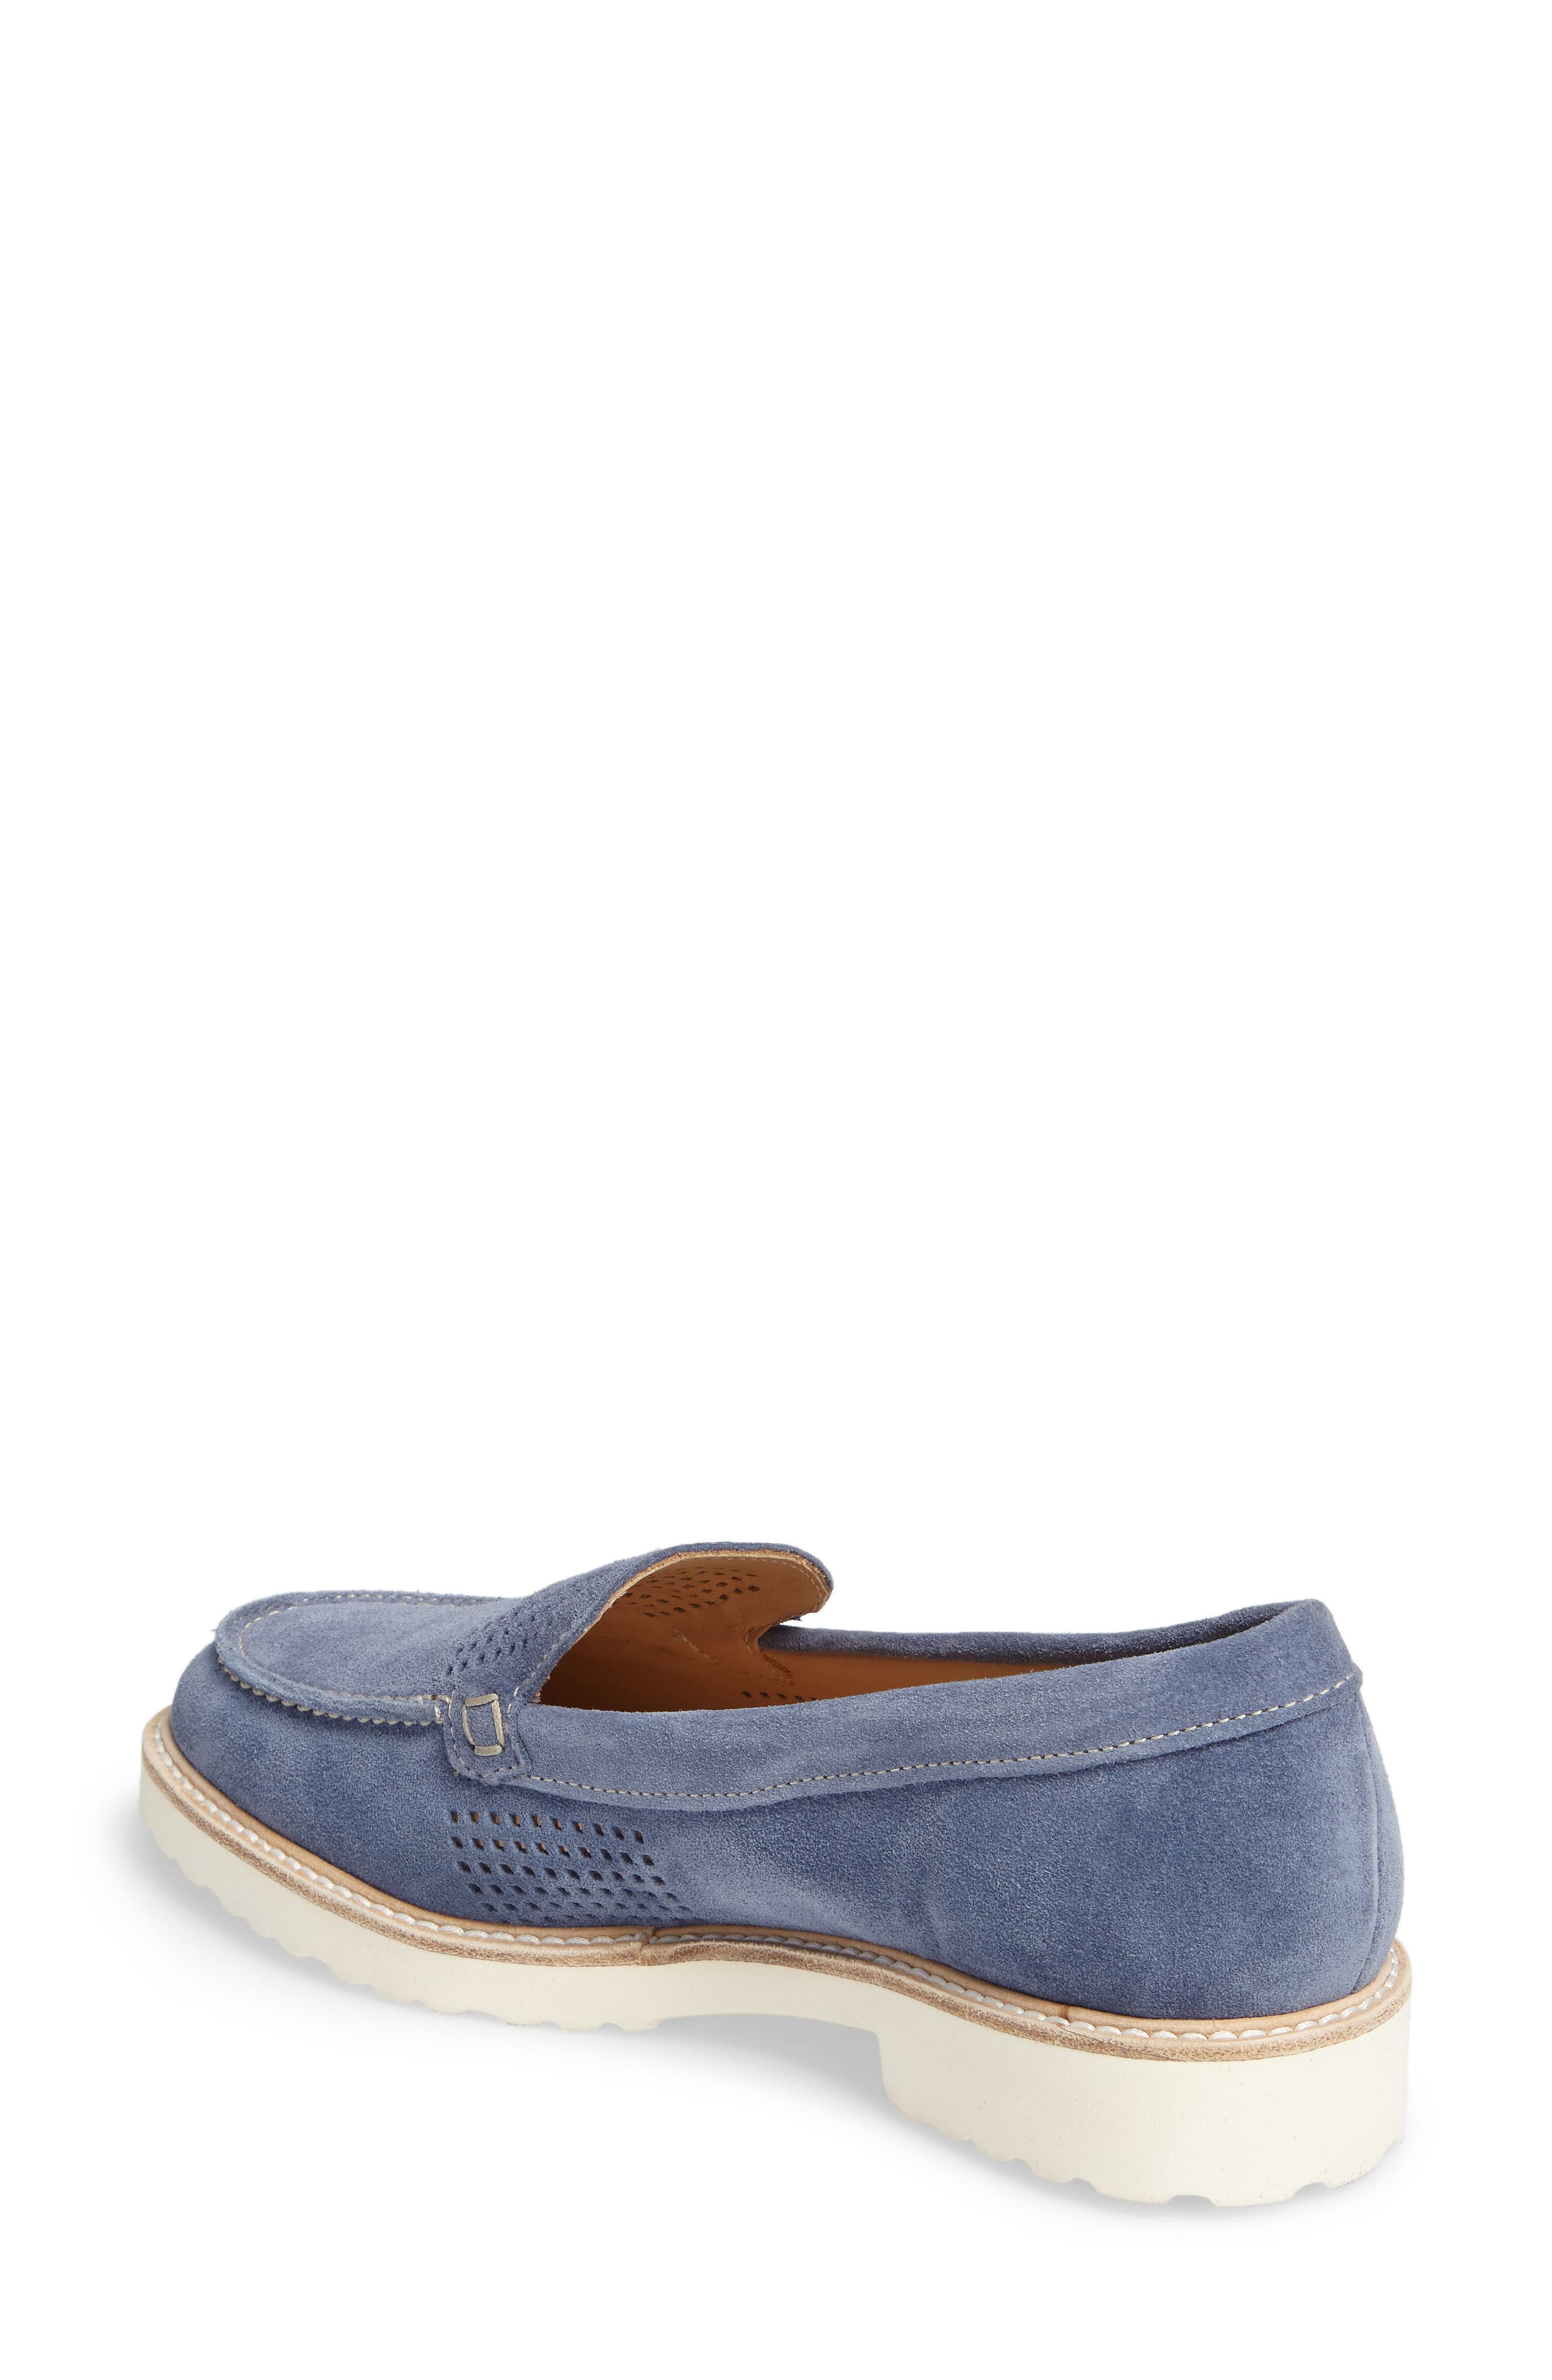 Alternate Image 2  - Ron White Wazzy Loafer (Women)